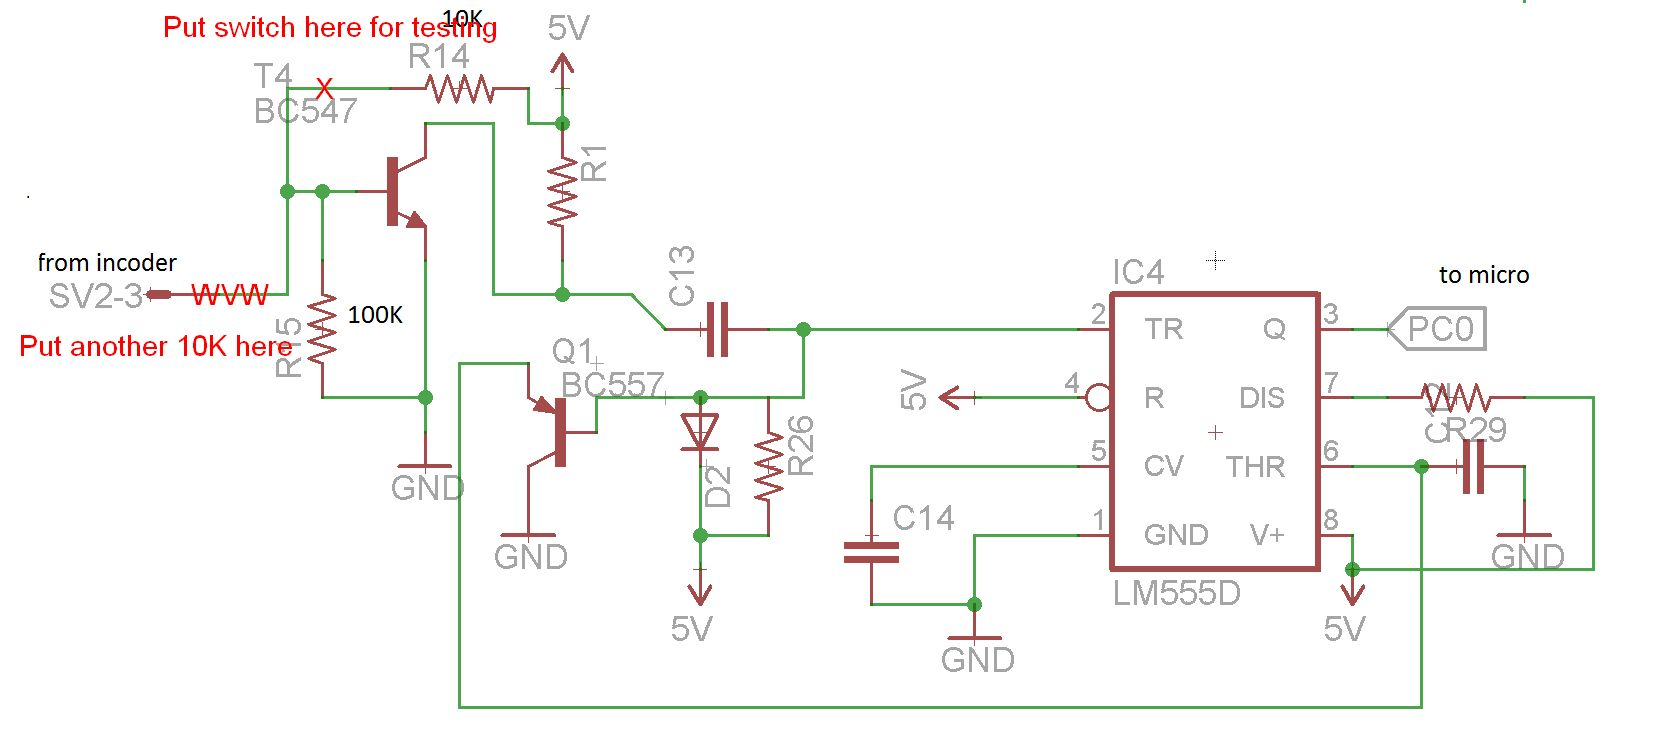 Encoder simple 1 channel to check ac motor stall | AVR Freaks